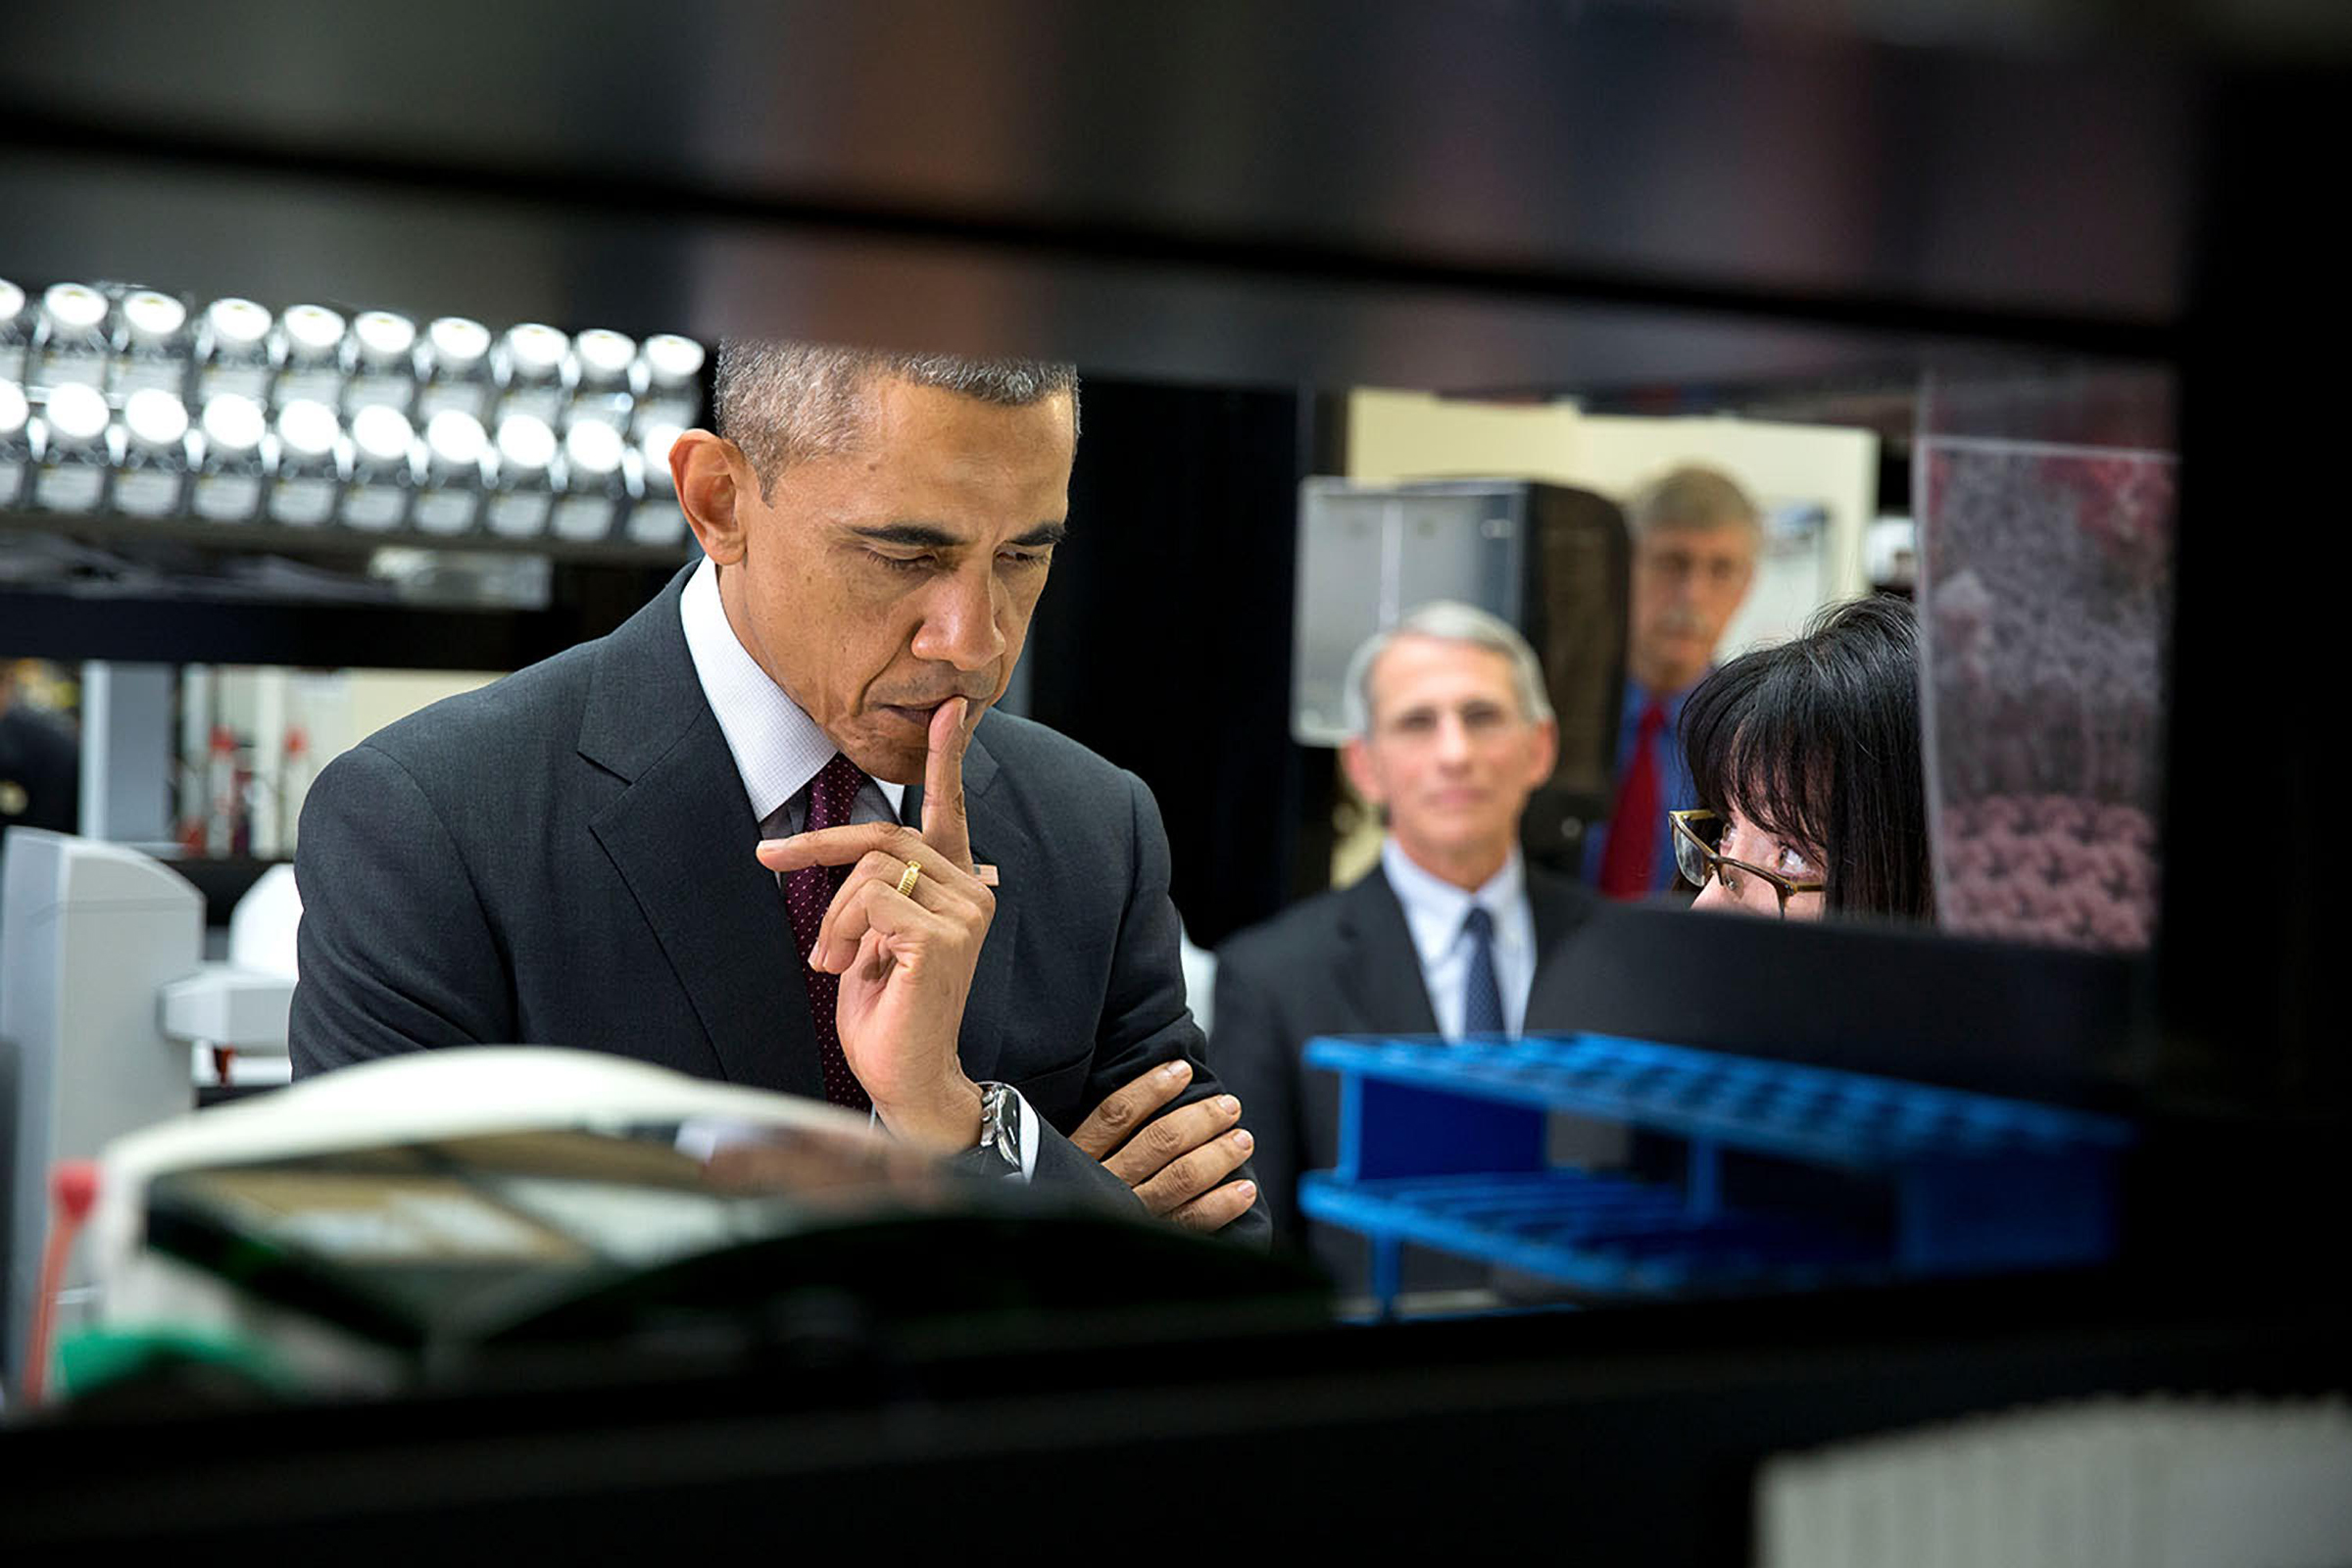 Obama visits the NIH's vaccine lab during the Ebola crisis